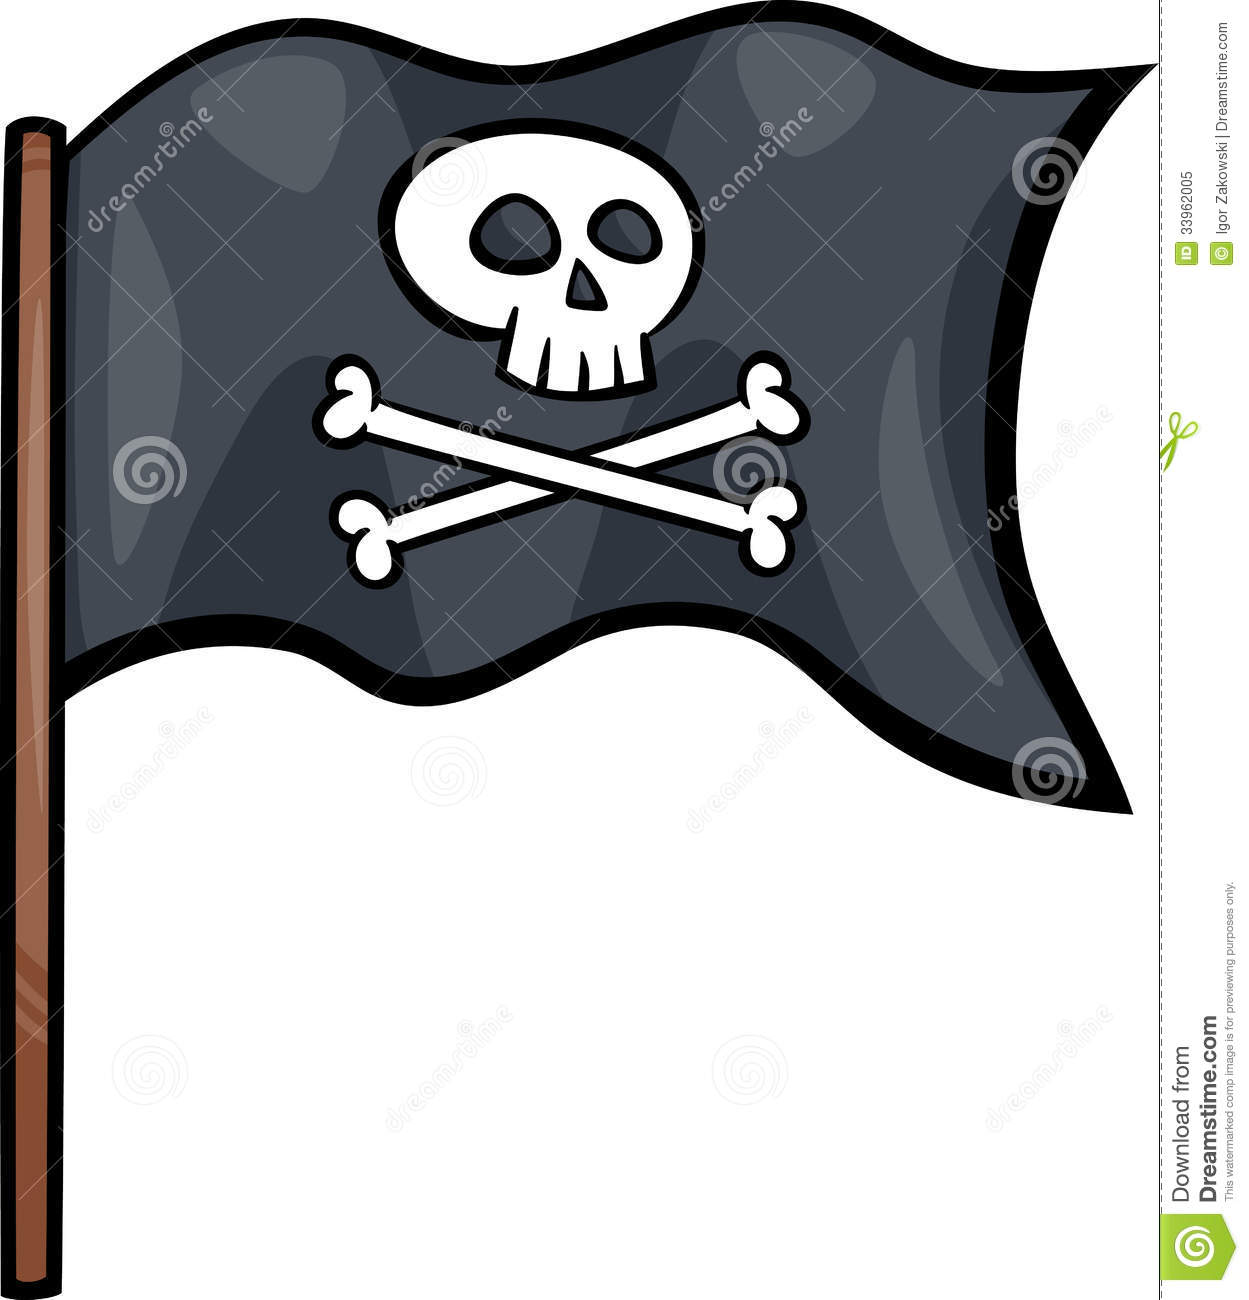 clipart pirate flag - photo #33